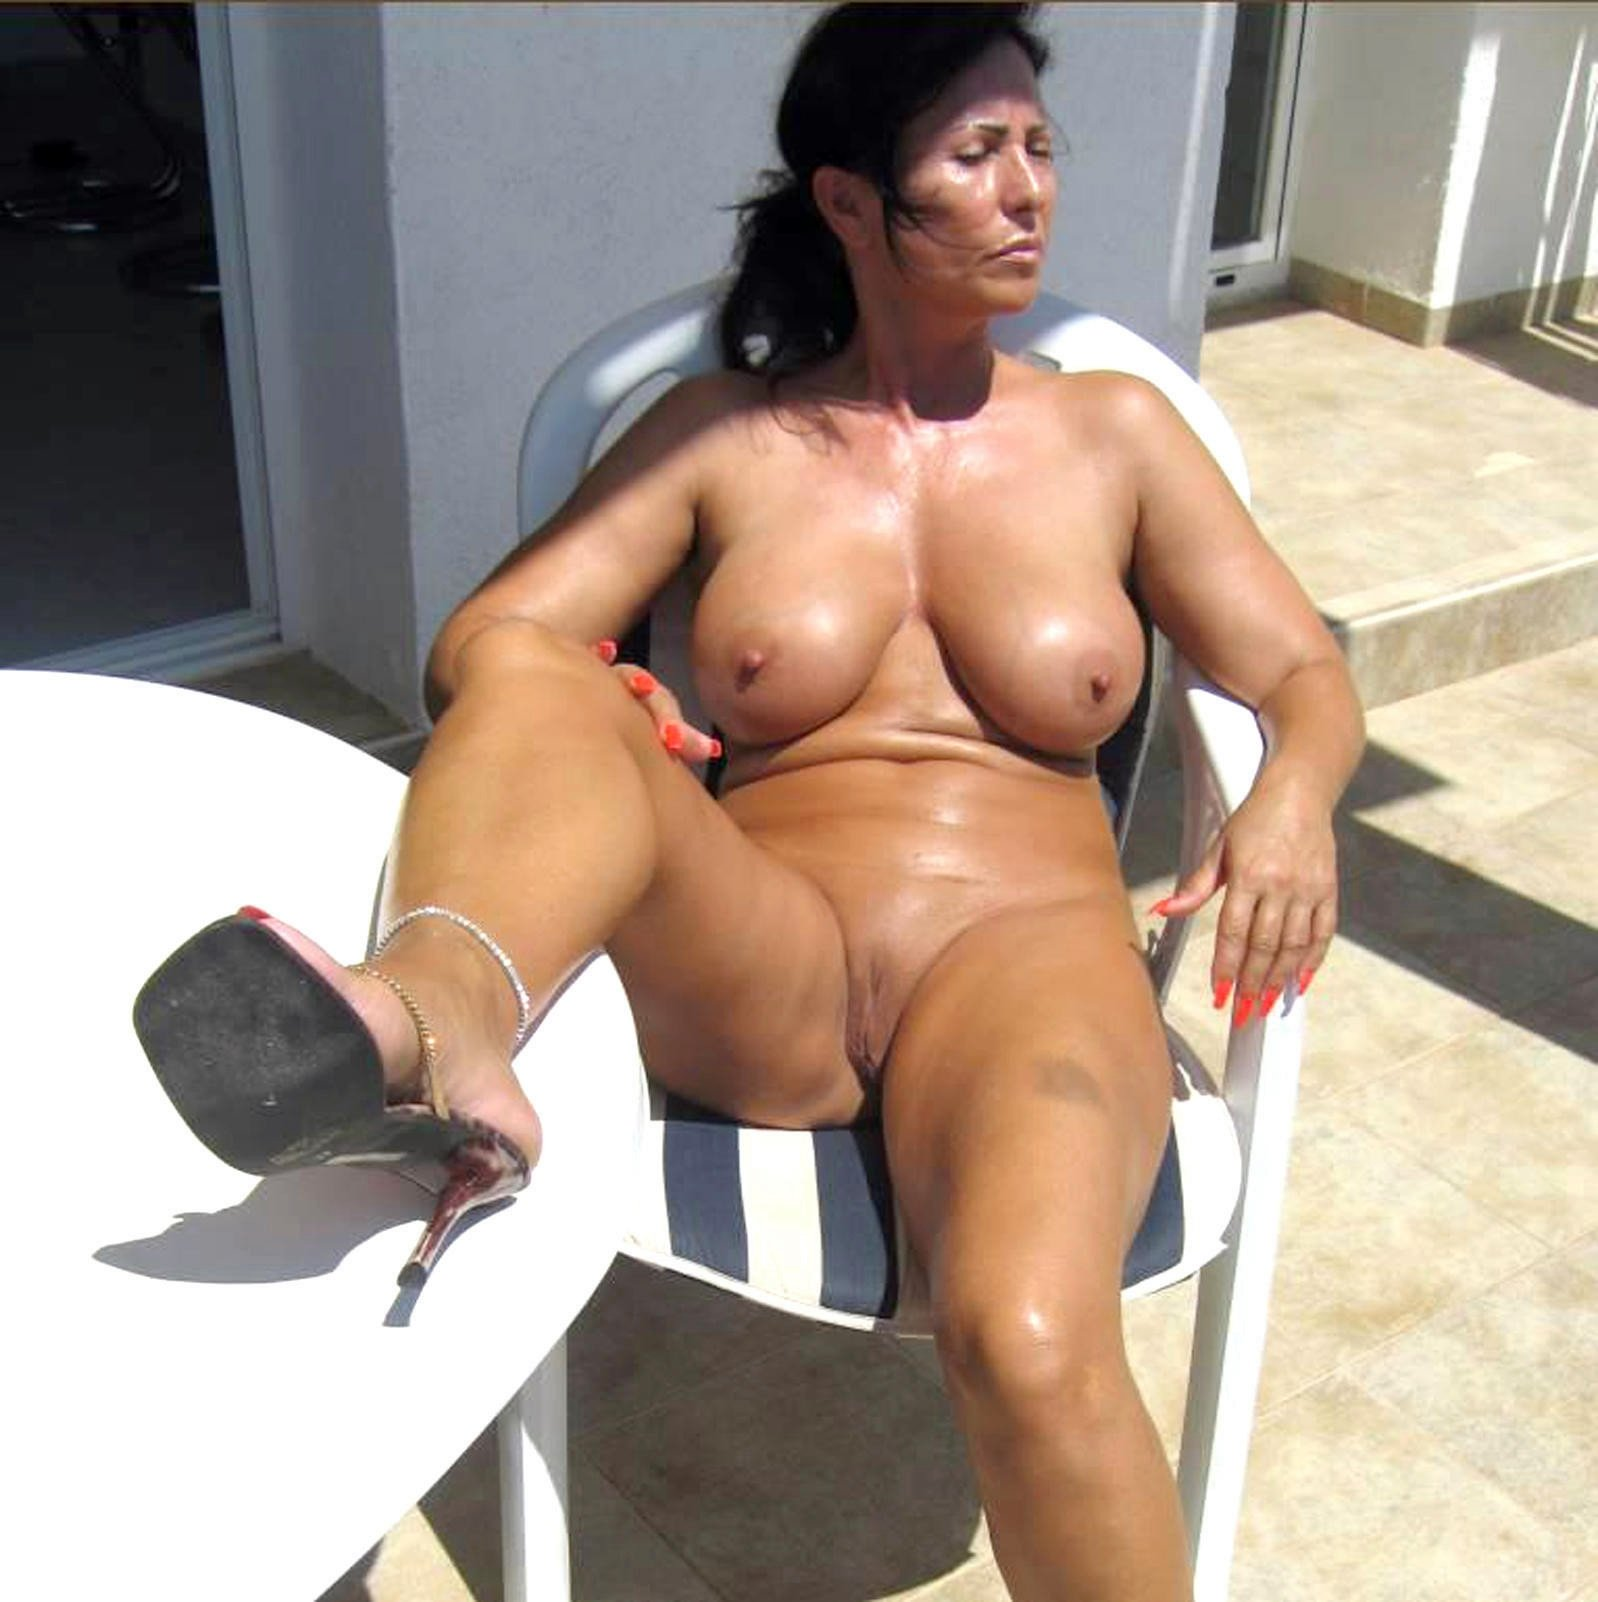 Bed shairig Wife has big pussy what can i do